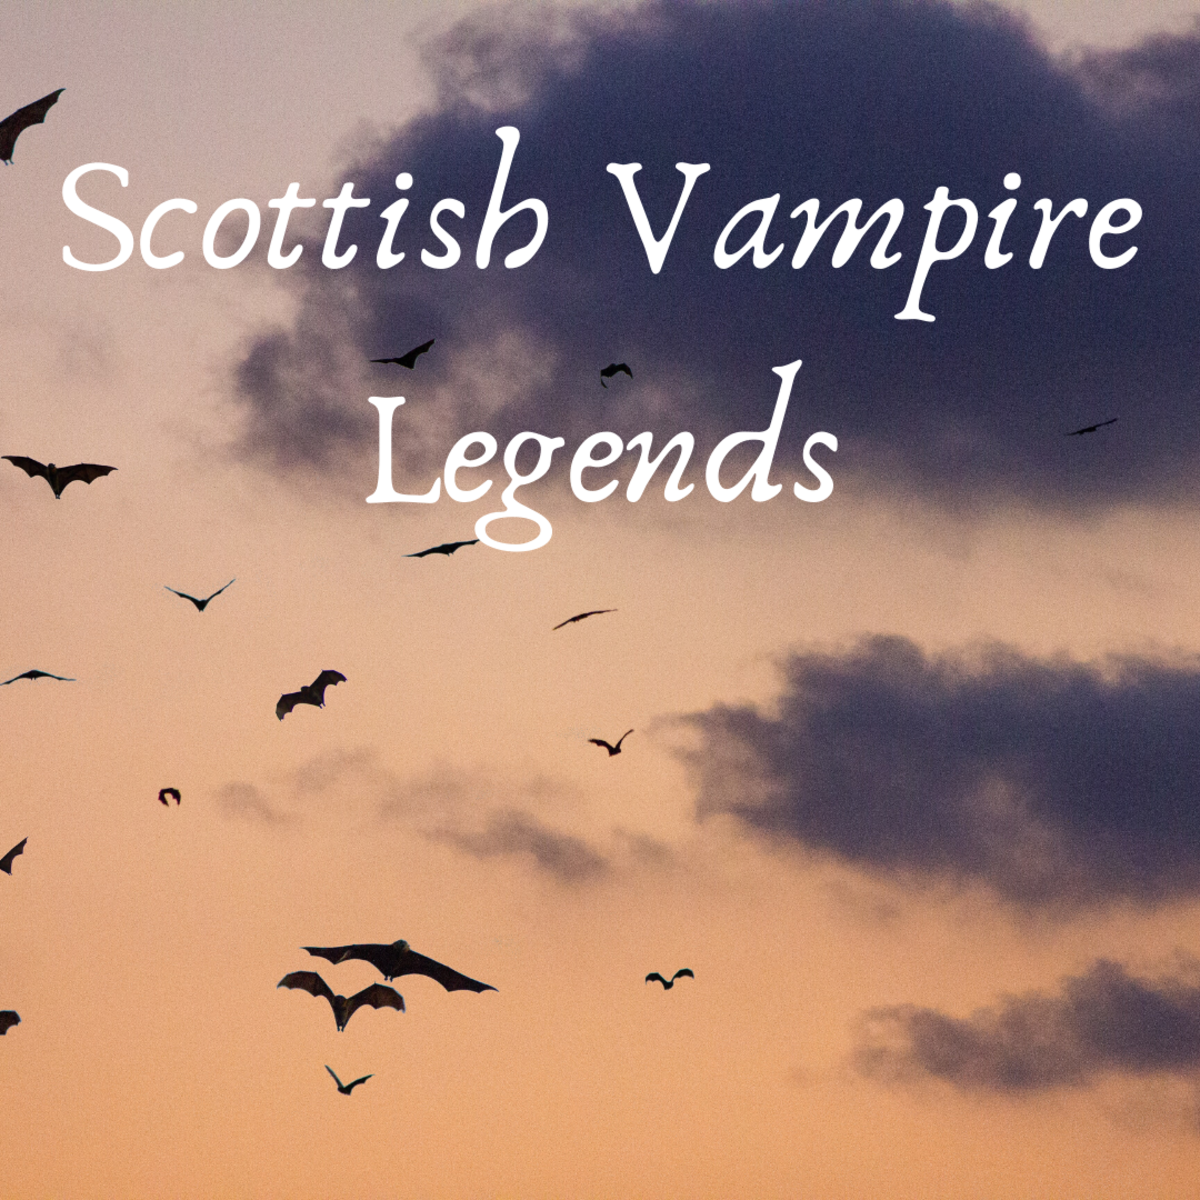 Read on to learn all about Scottish Vampire Legends.